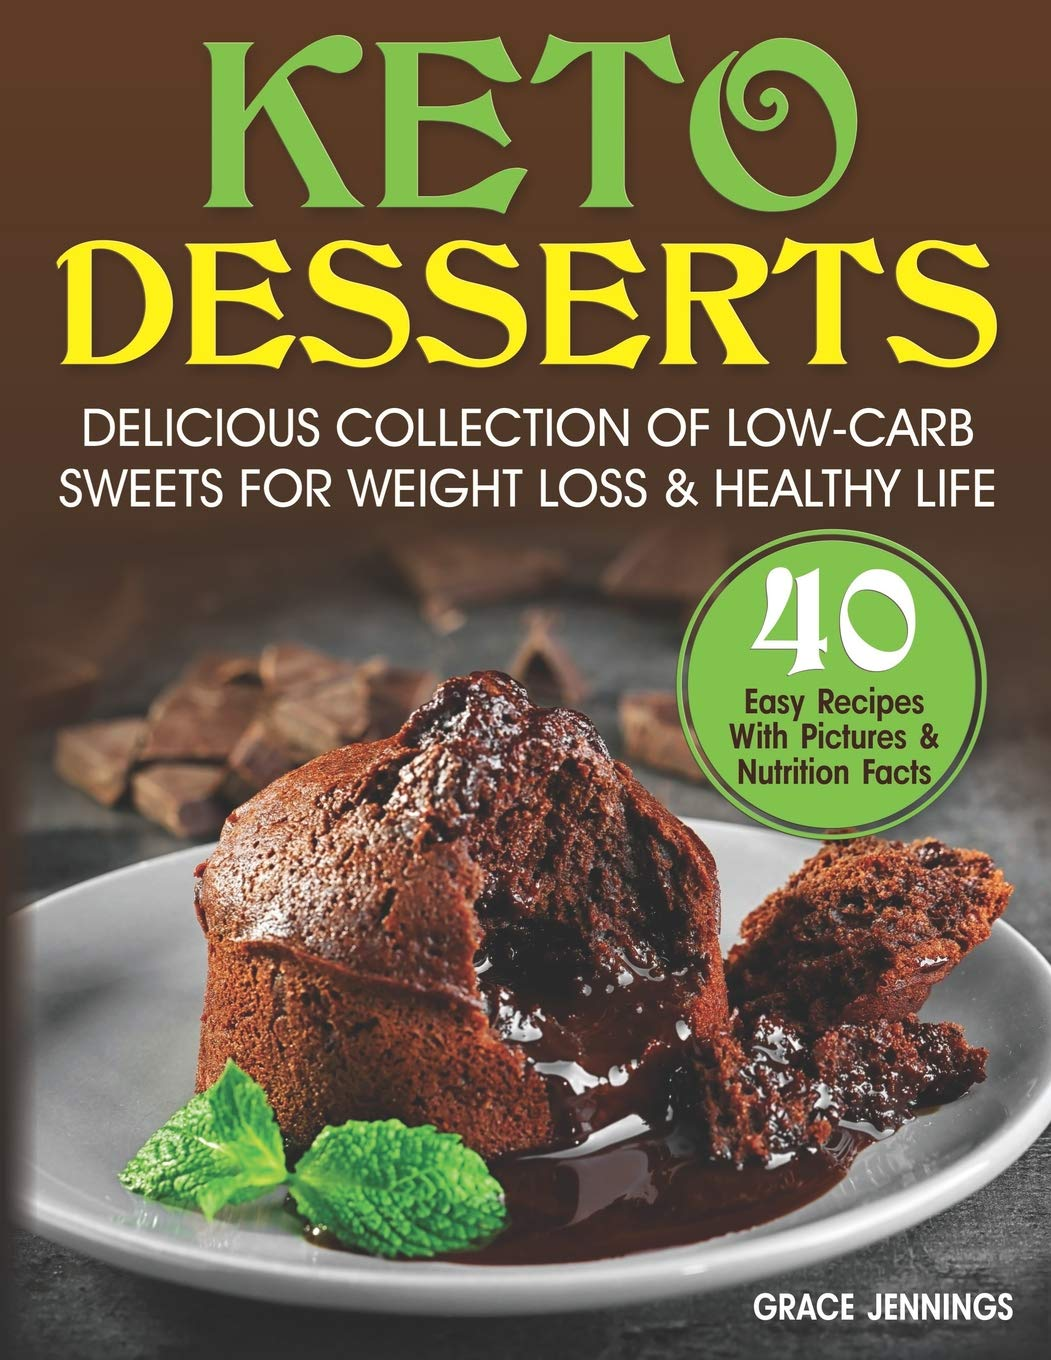 Preview  Keto-Friendly Dessert Recipes Keto Sweets